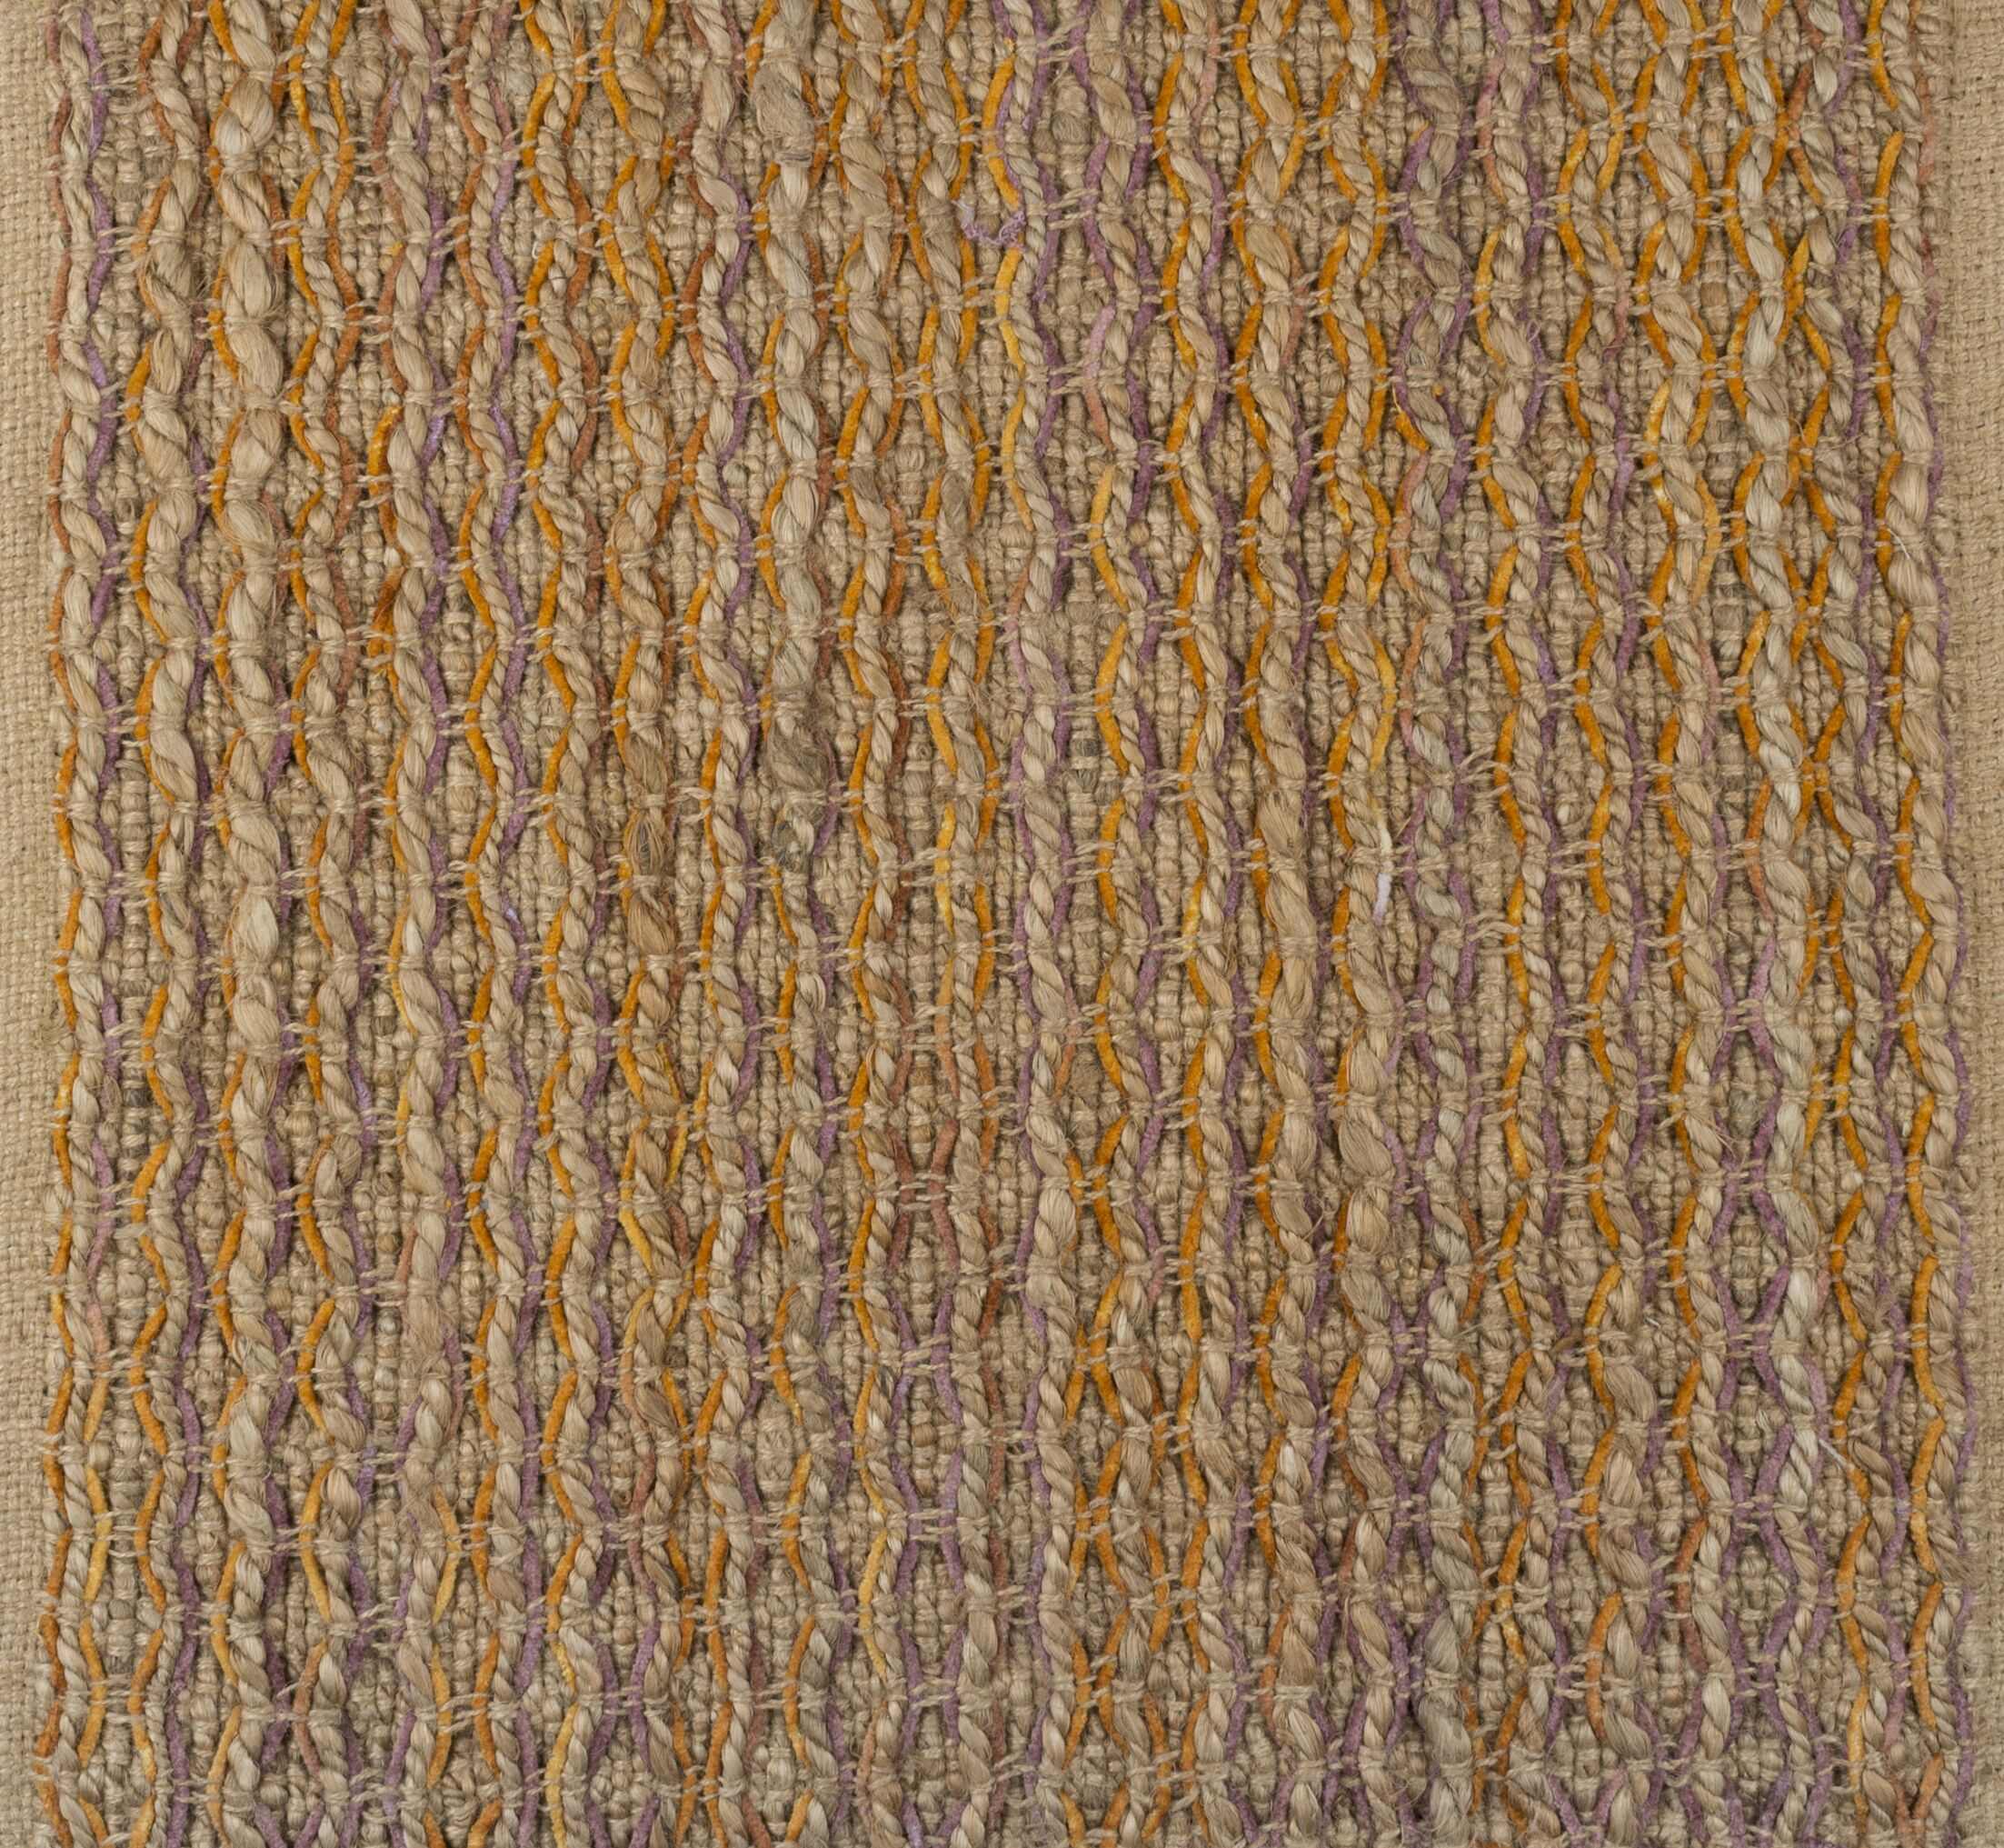 Horsham Jute Hand-Woven Beige/Mustard Area Rug Rug Size: Rectangle 8' x 10'